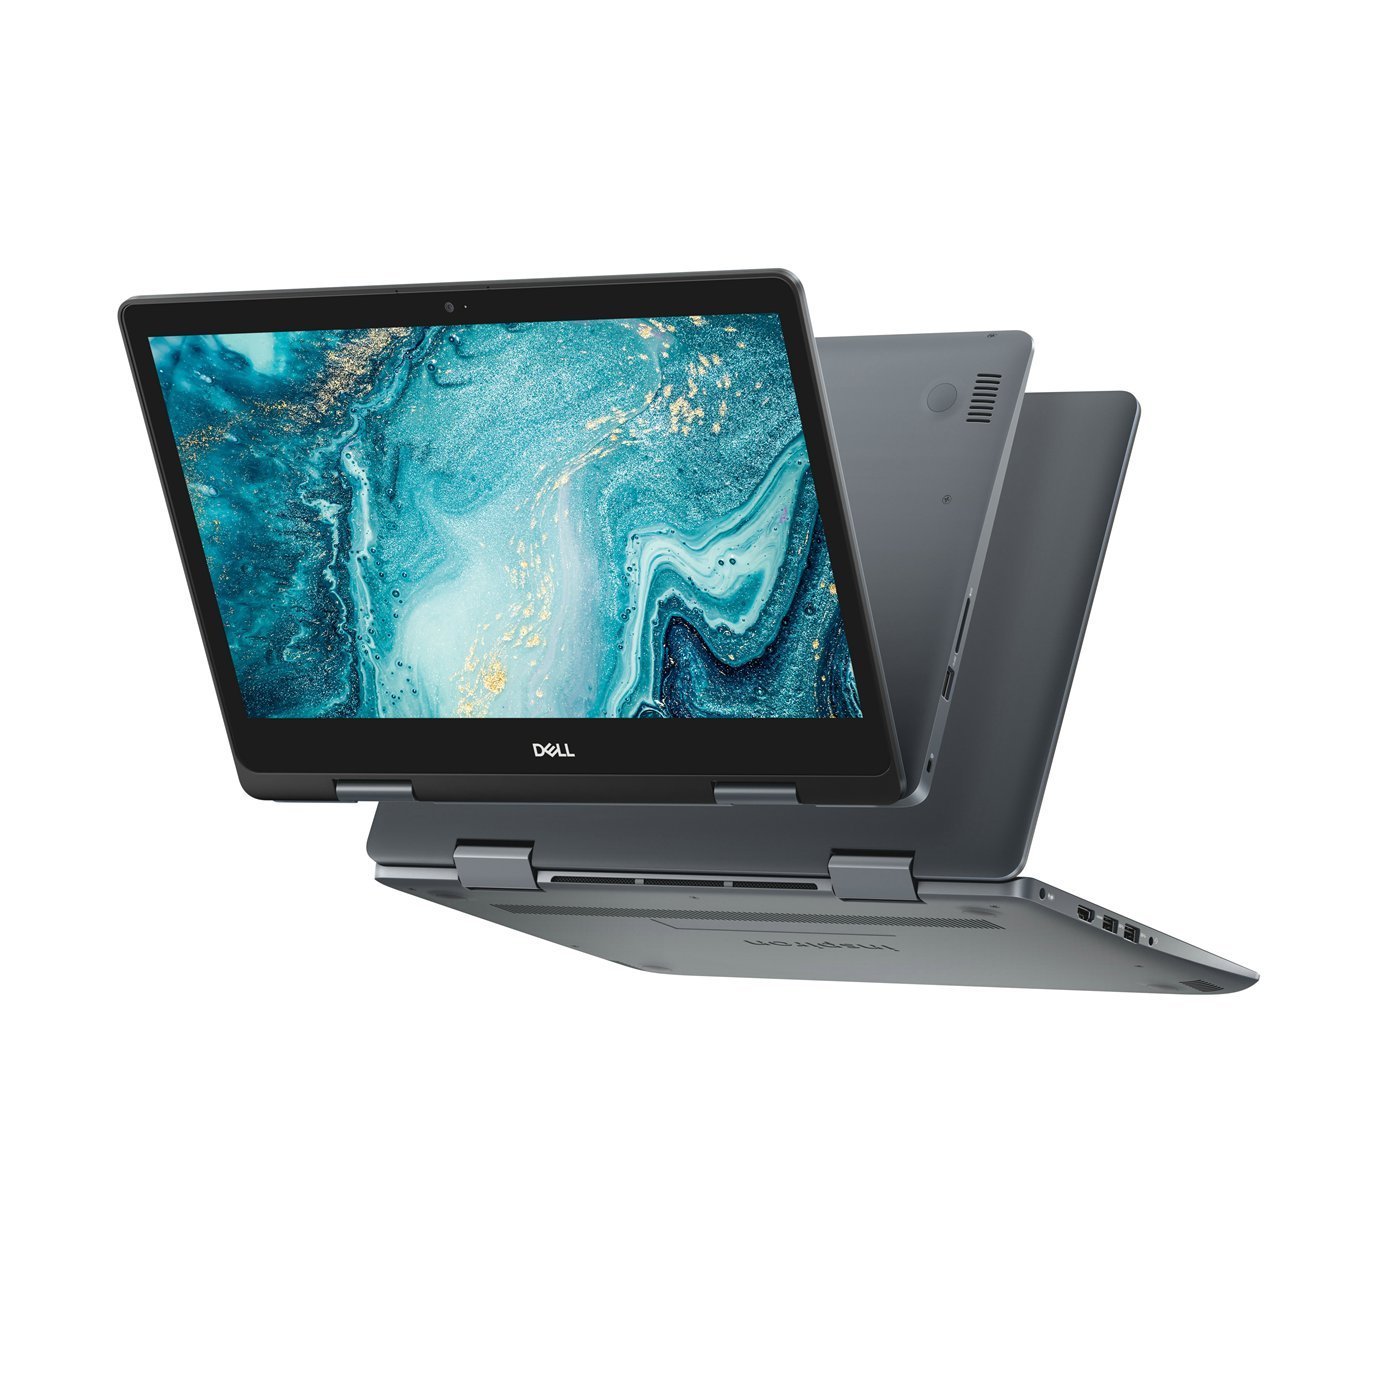 Dell IFA 2018 laptop inspiron 14 5481 s